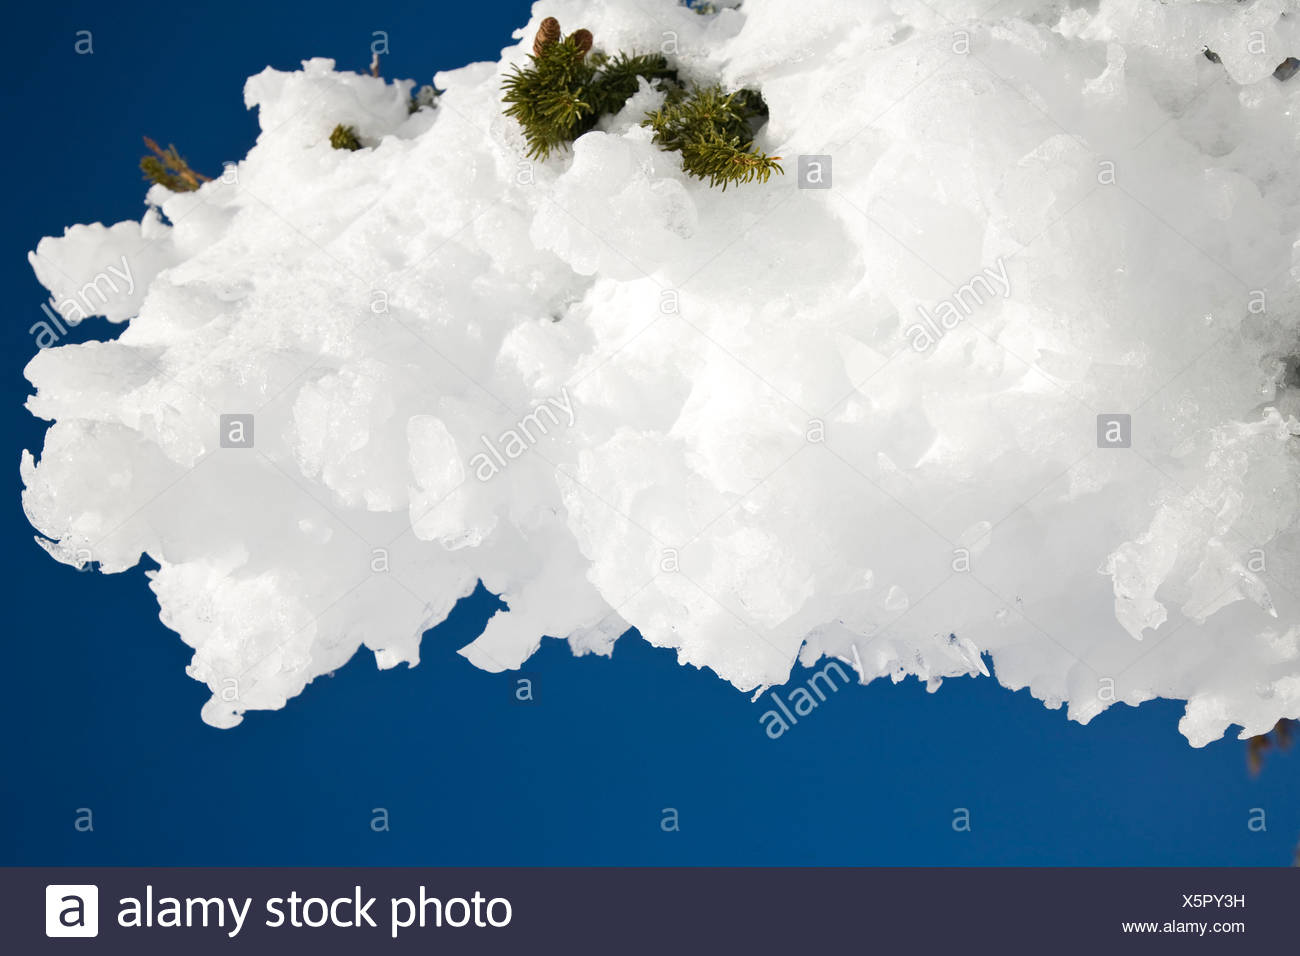 Thick snow on a tree branch - Stock Image